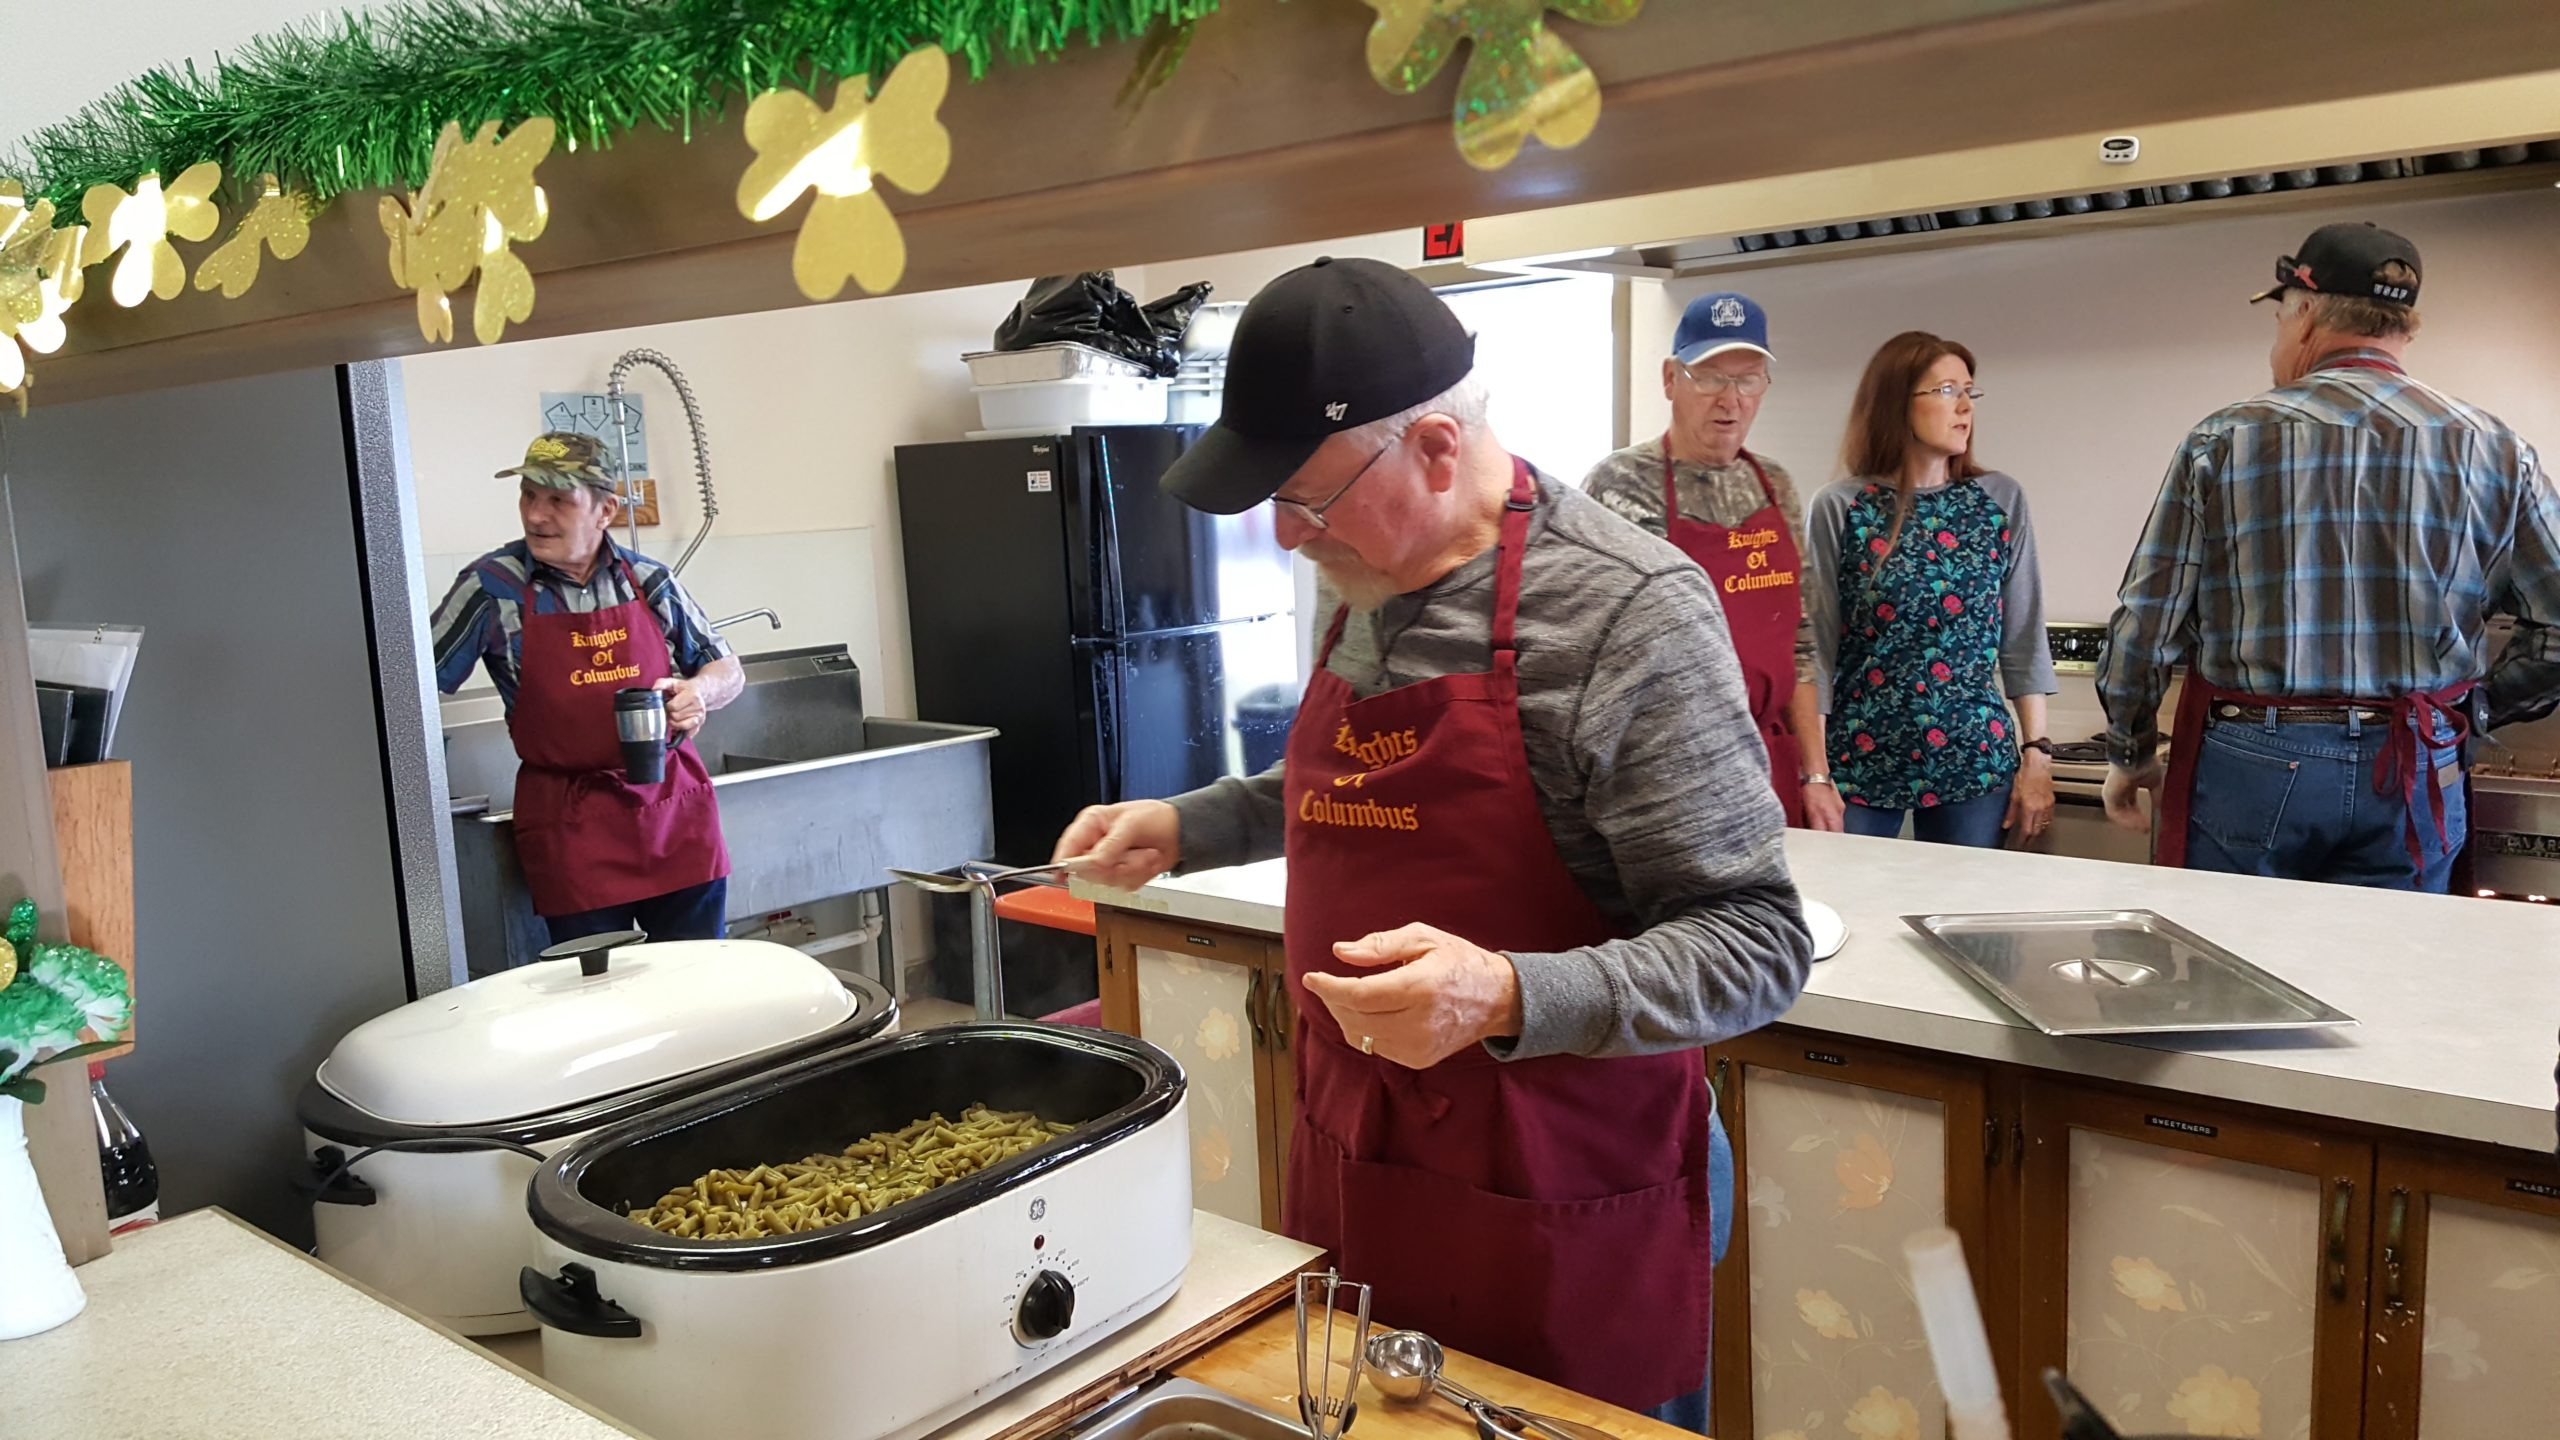 WPLenten Fish Fry Kitchen Activity